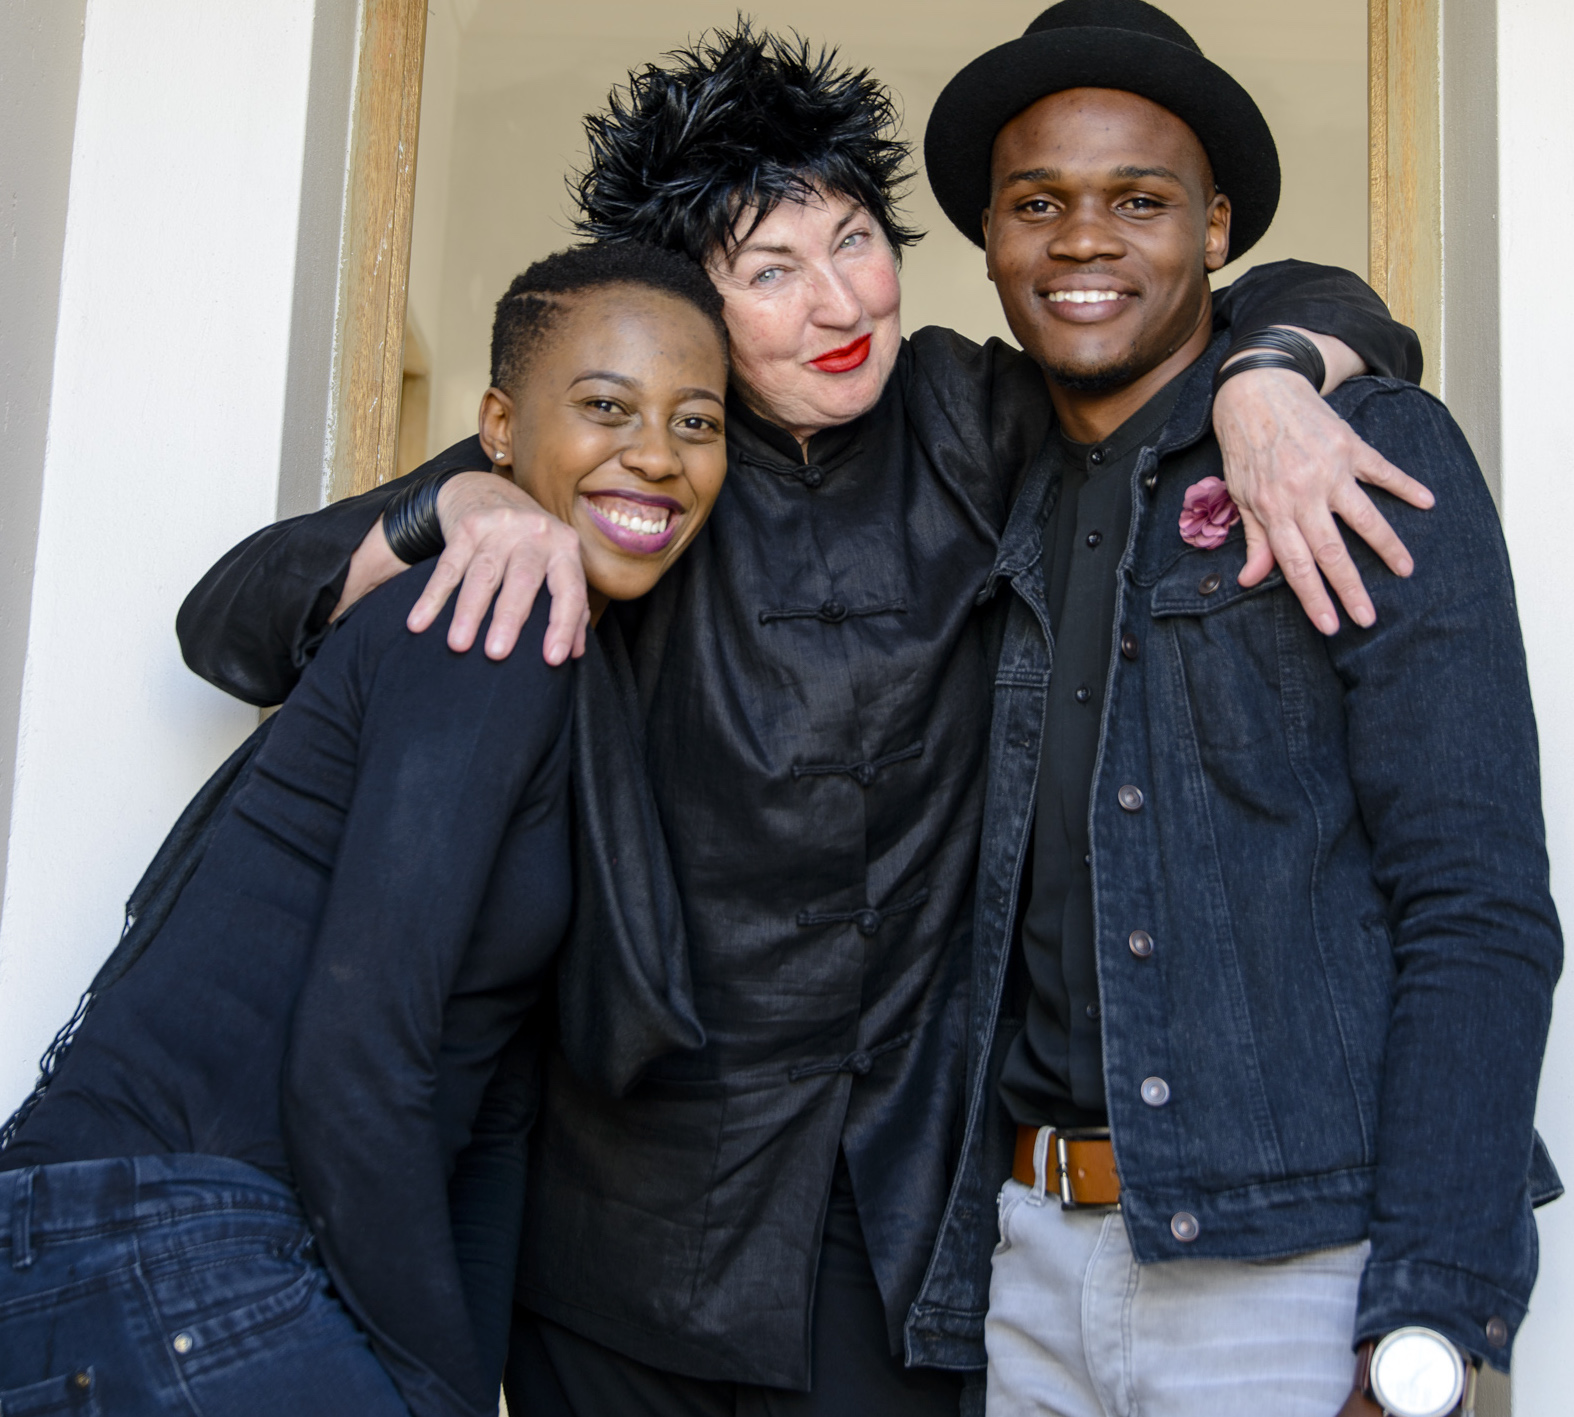 Team Visi - Lesego Masekela (left) and Mpho Designer (right) with their mentor Annemarie Meintjes of VISI copy